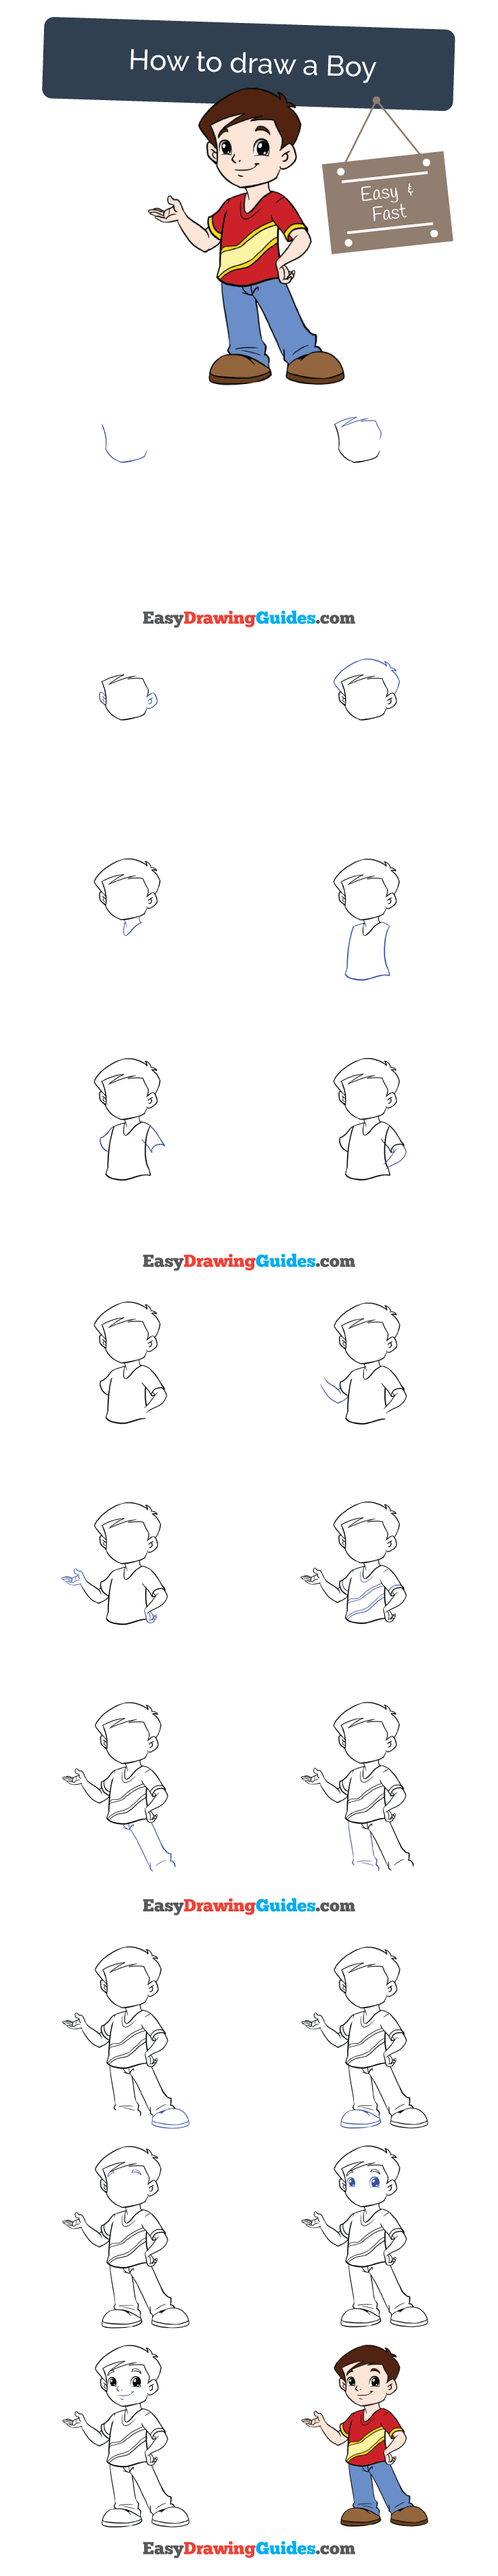 How To Draw A Boy In A Few Easy Steps Easy Drawing Guides Drawing Tutorials For Kids Easy Drawings Drawing Tutorial Easy